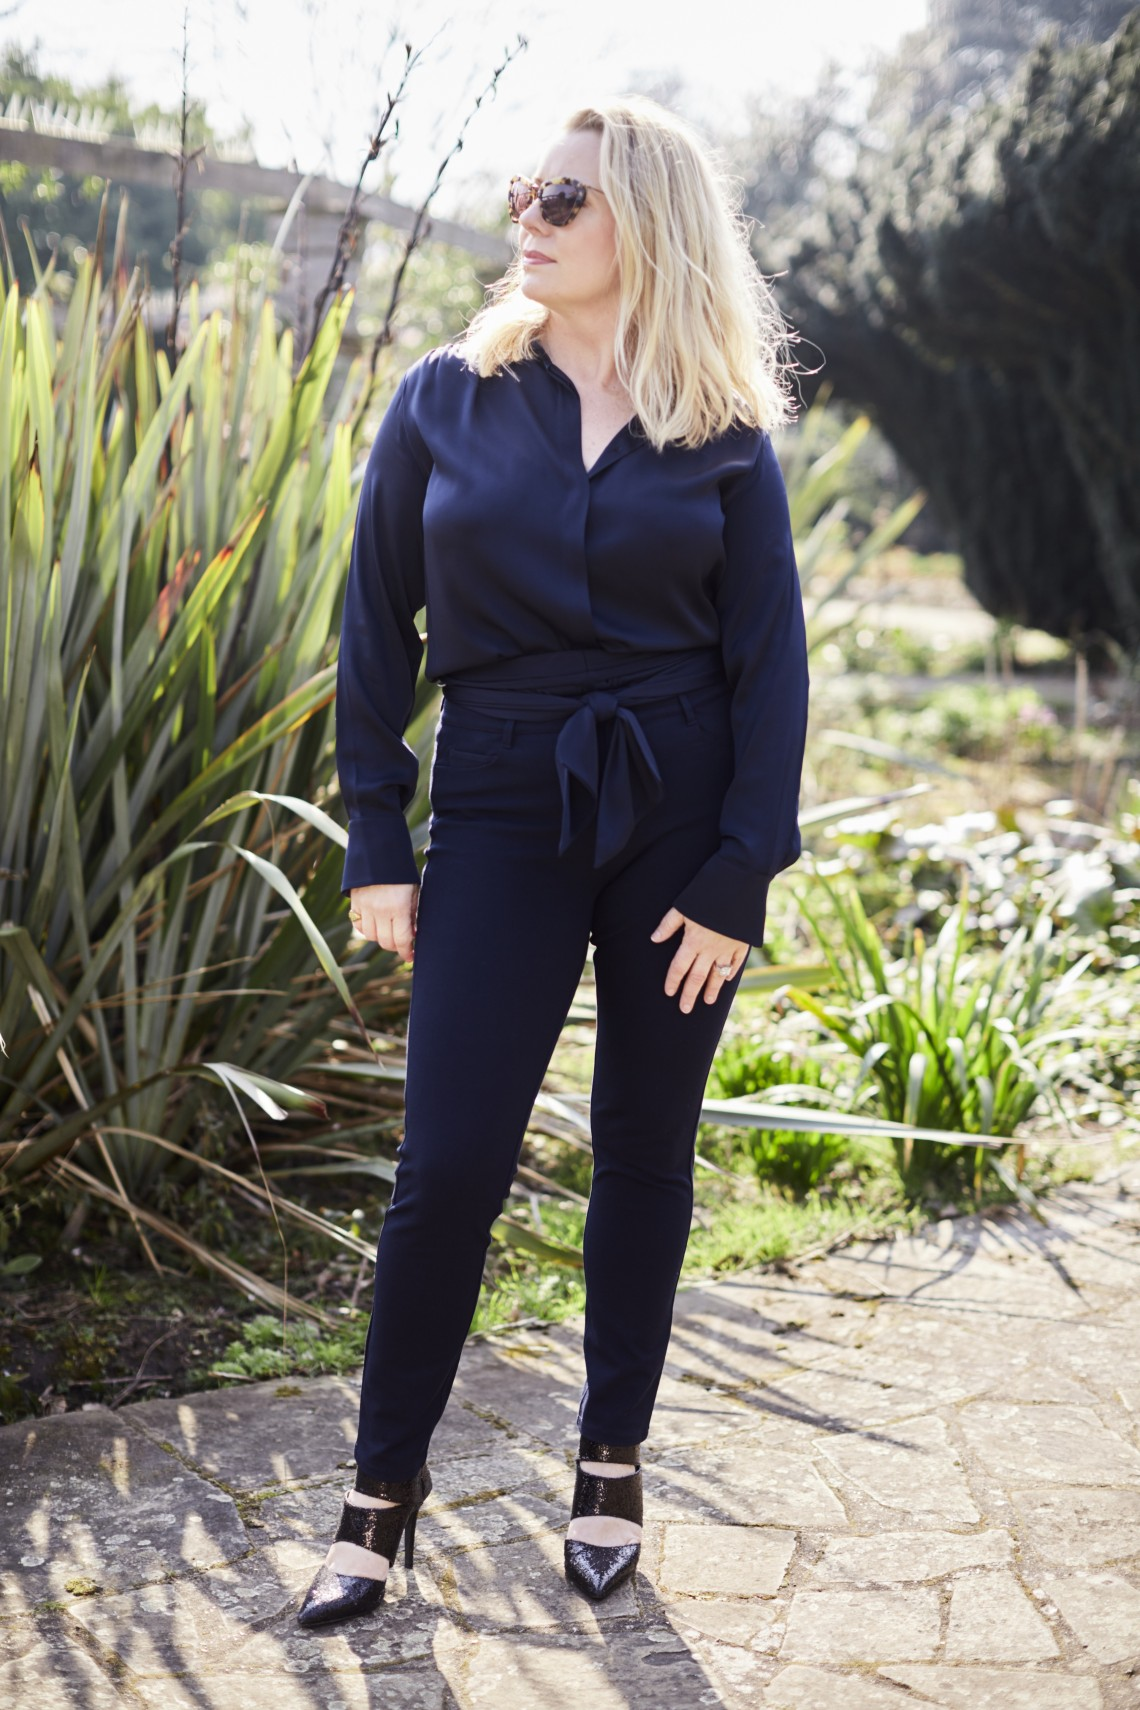 Chic all black outfit inspiration | 40plusstyle.com